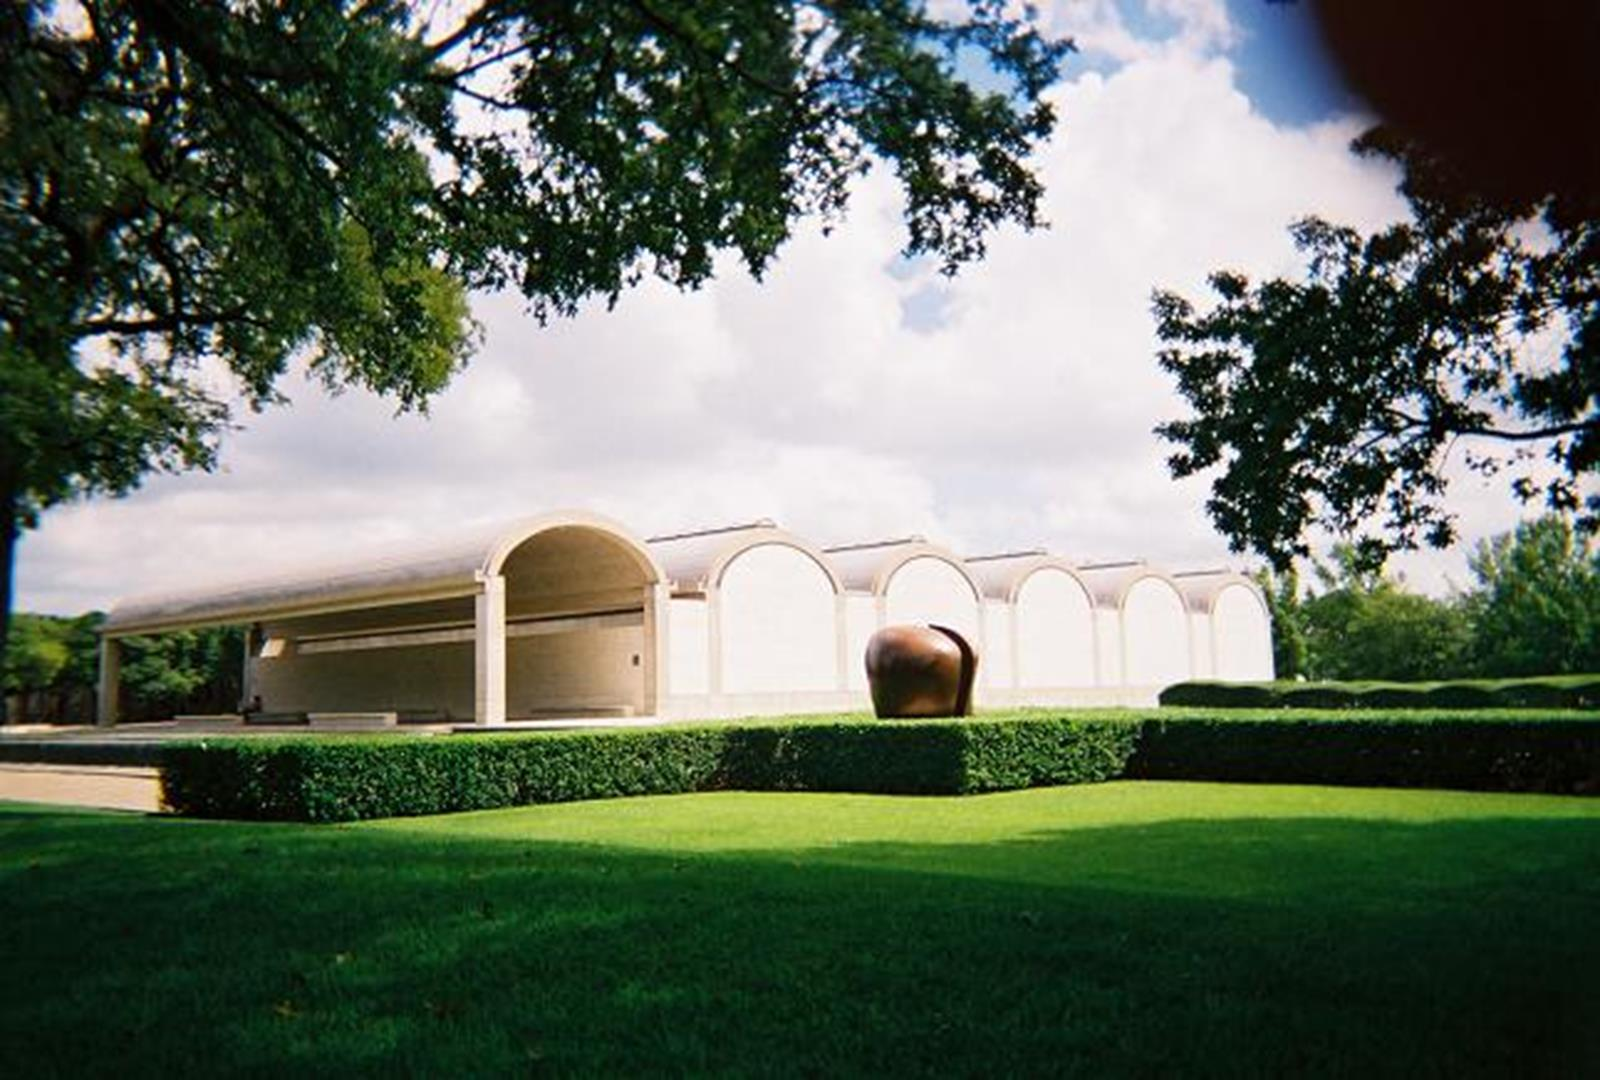 The South Wing of the Kimbell Art Museum